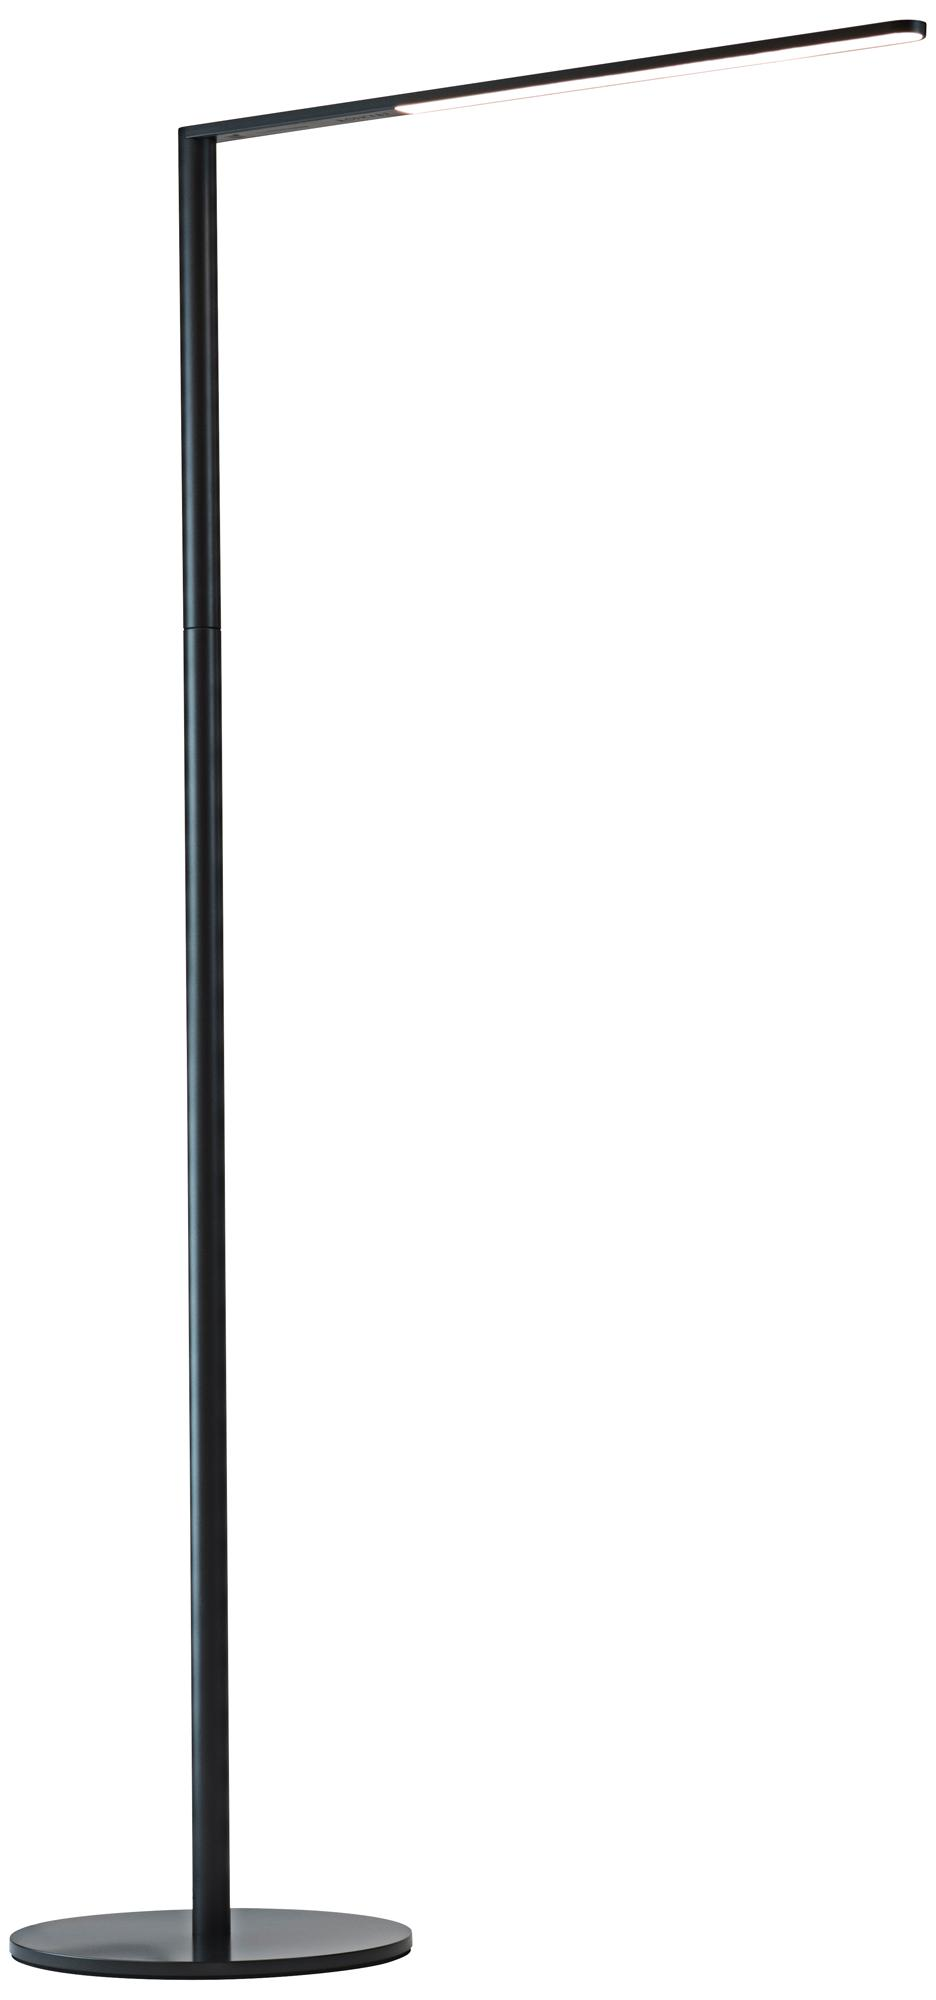 Koncept Lady-7 Metallic Black LED Floor Lamp (9C387)